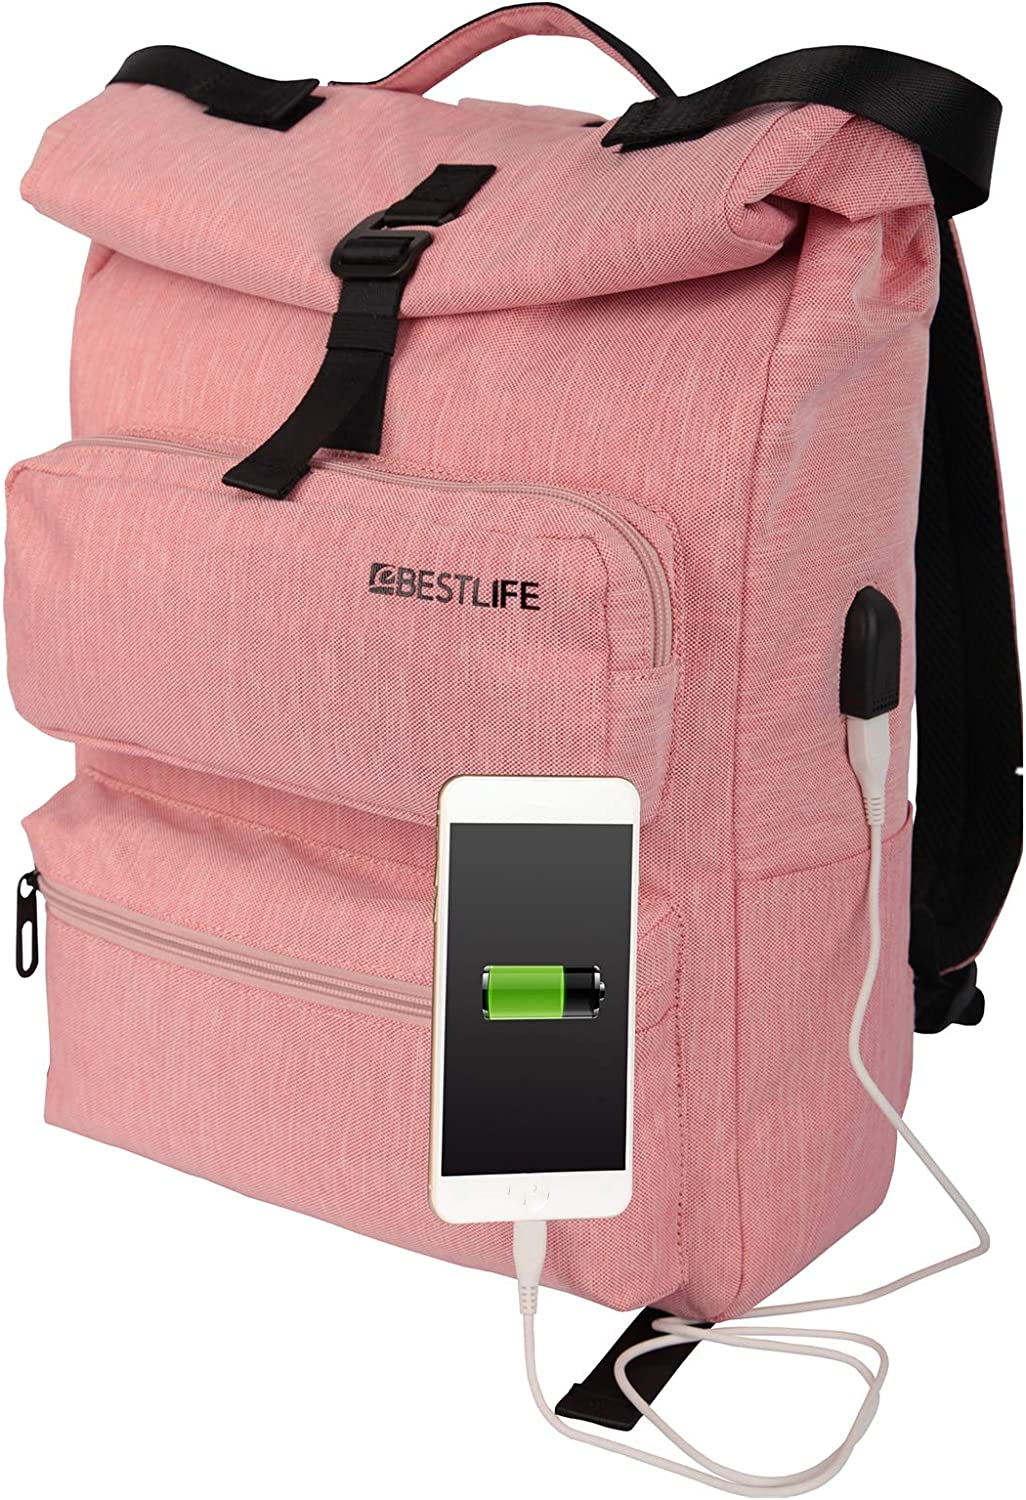 Ground Mind Laptop Backpack 15.6 Inch Roll Top Lightweight Rucksack Travel Anti-Theft Casual Daypacks with USB Connector for Women Pink